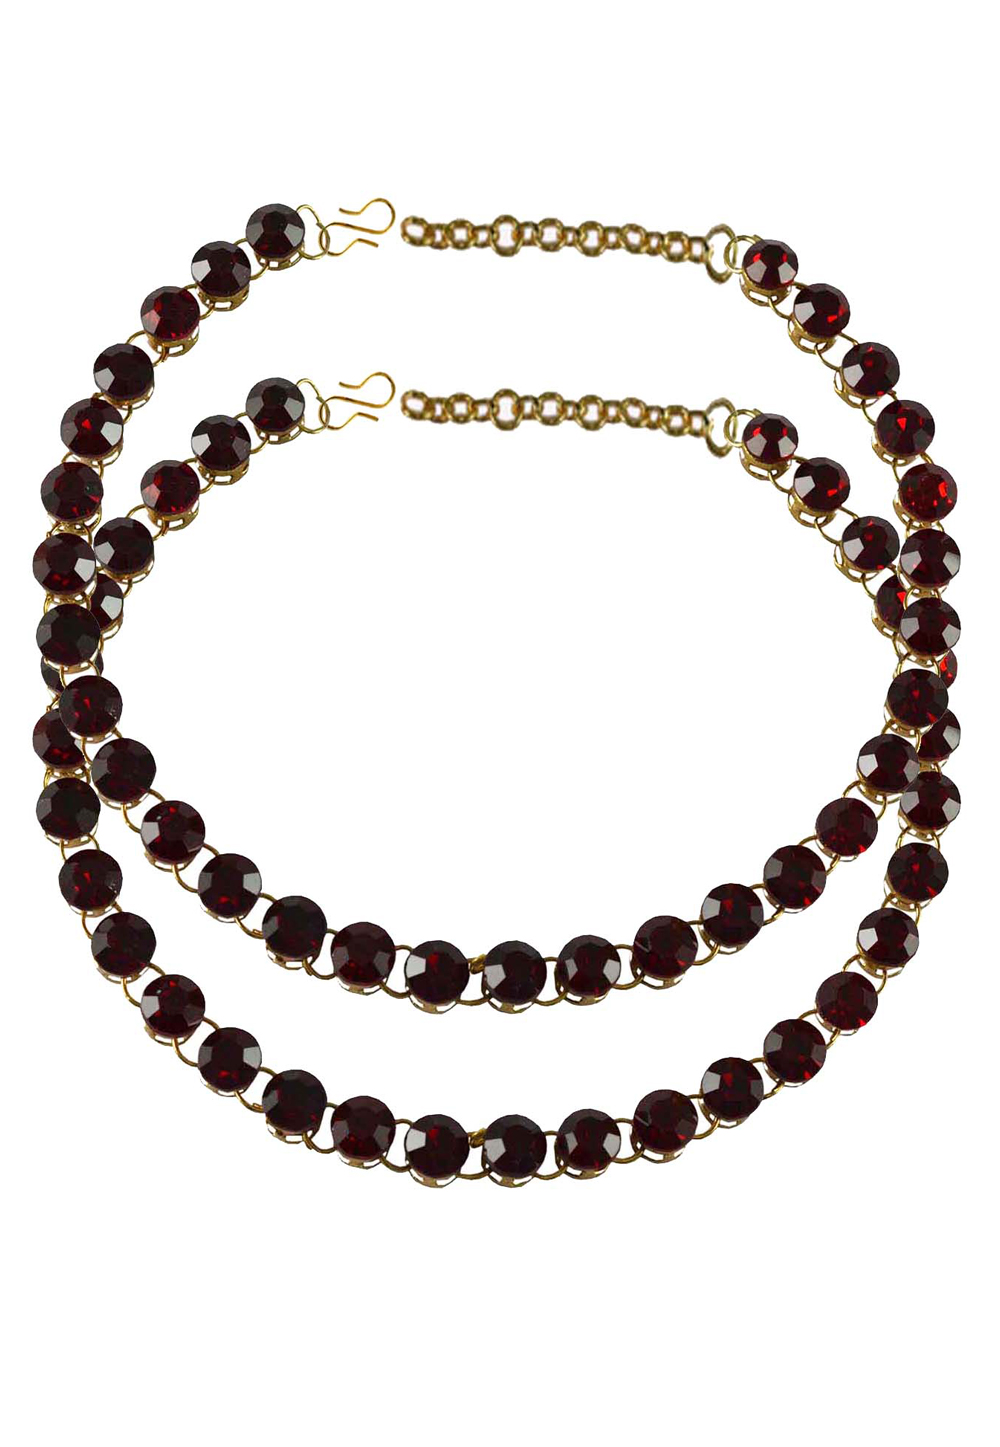 Maroon Brass Gold Plated Anklets 171264